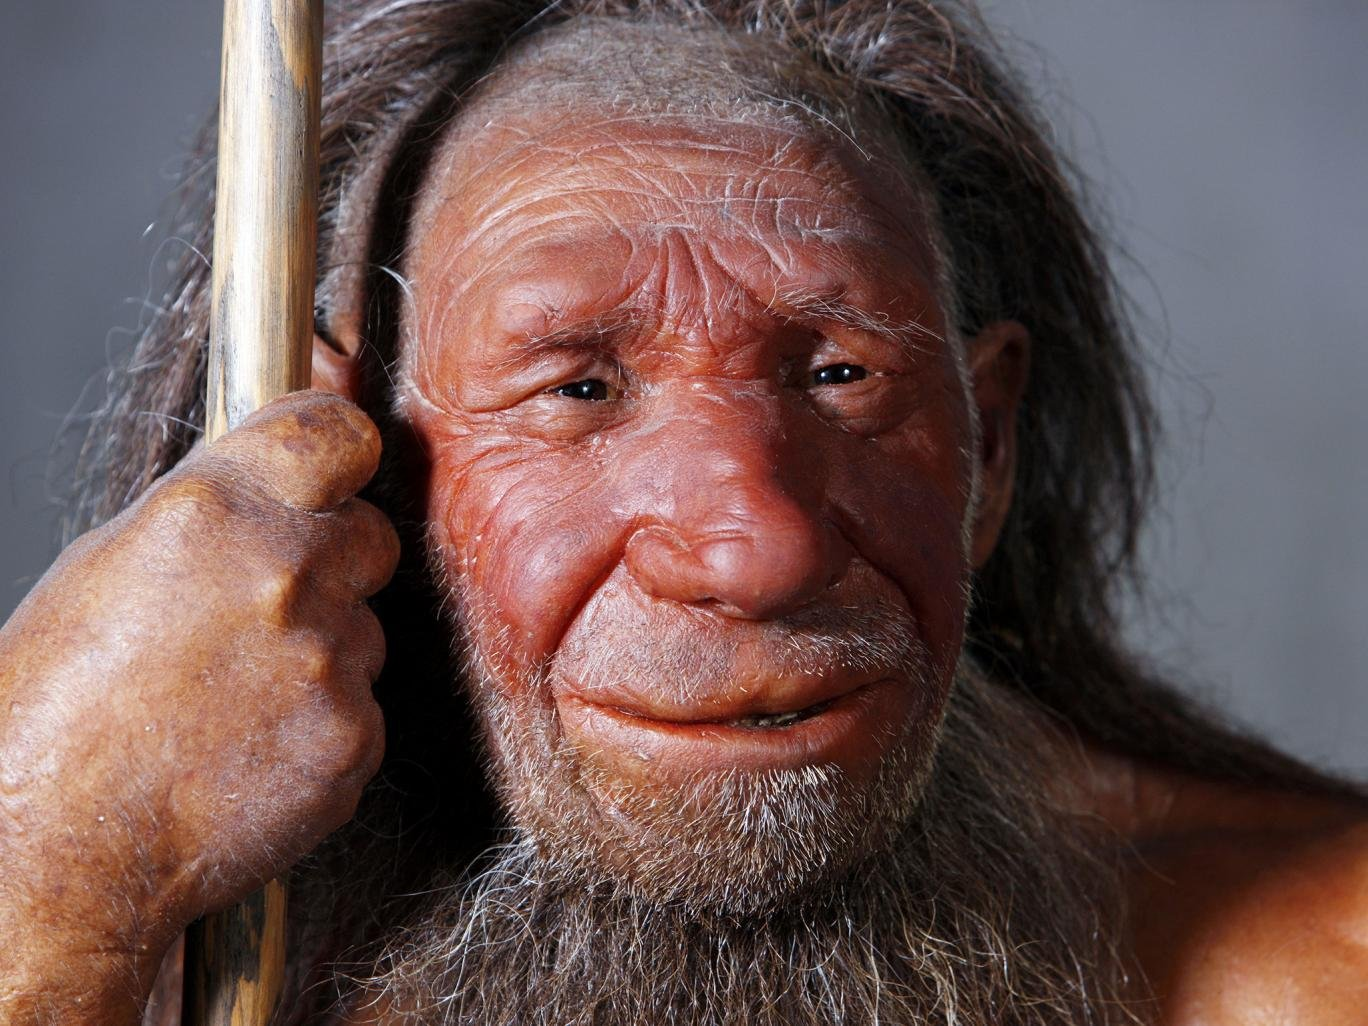 neanderthal and early modern humans Below, we summarize the current isotopic evidence for neanderthal and modern human diets and suggest that the previously unrecorded data support our original inference that there was a shift in dietary spectra between the neanderthals and early modern humans in europe.